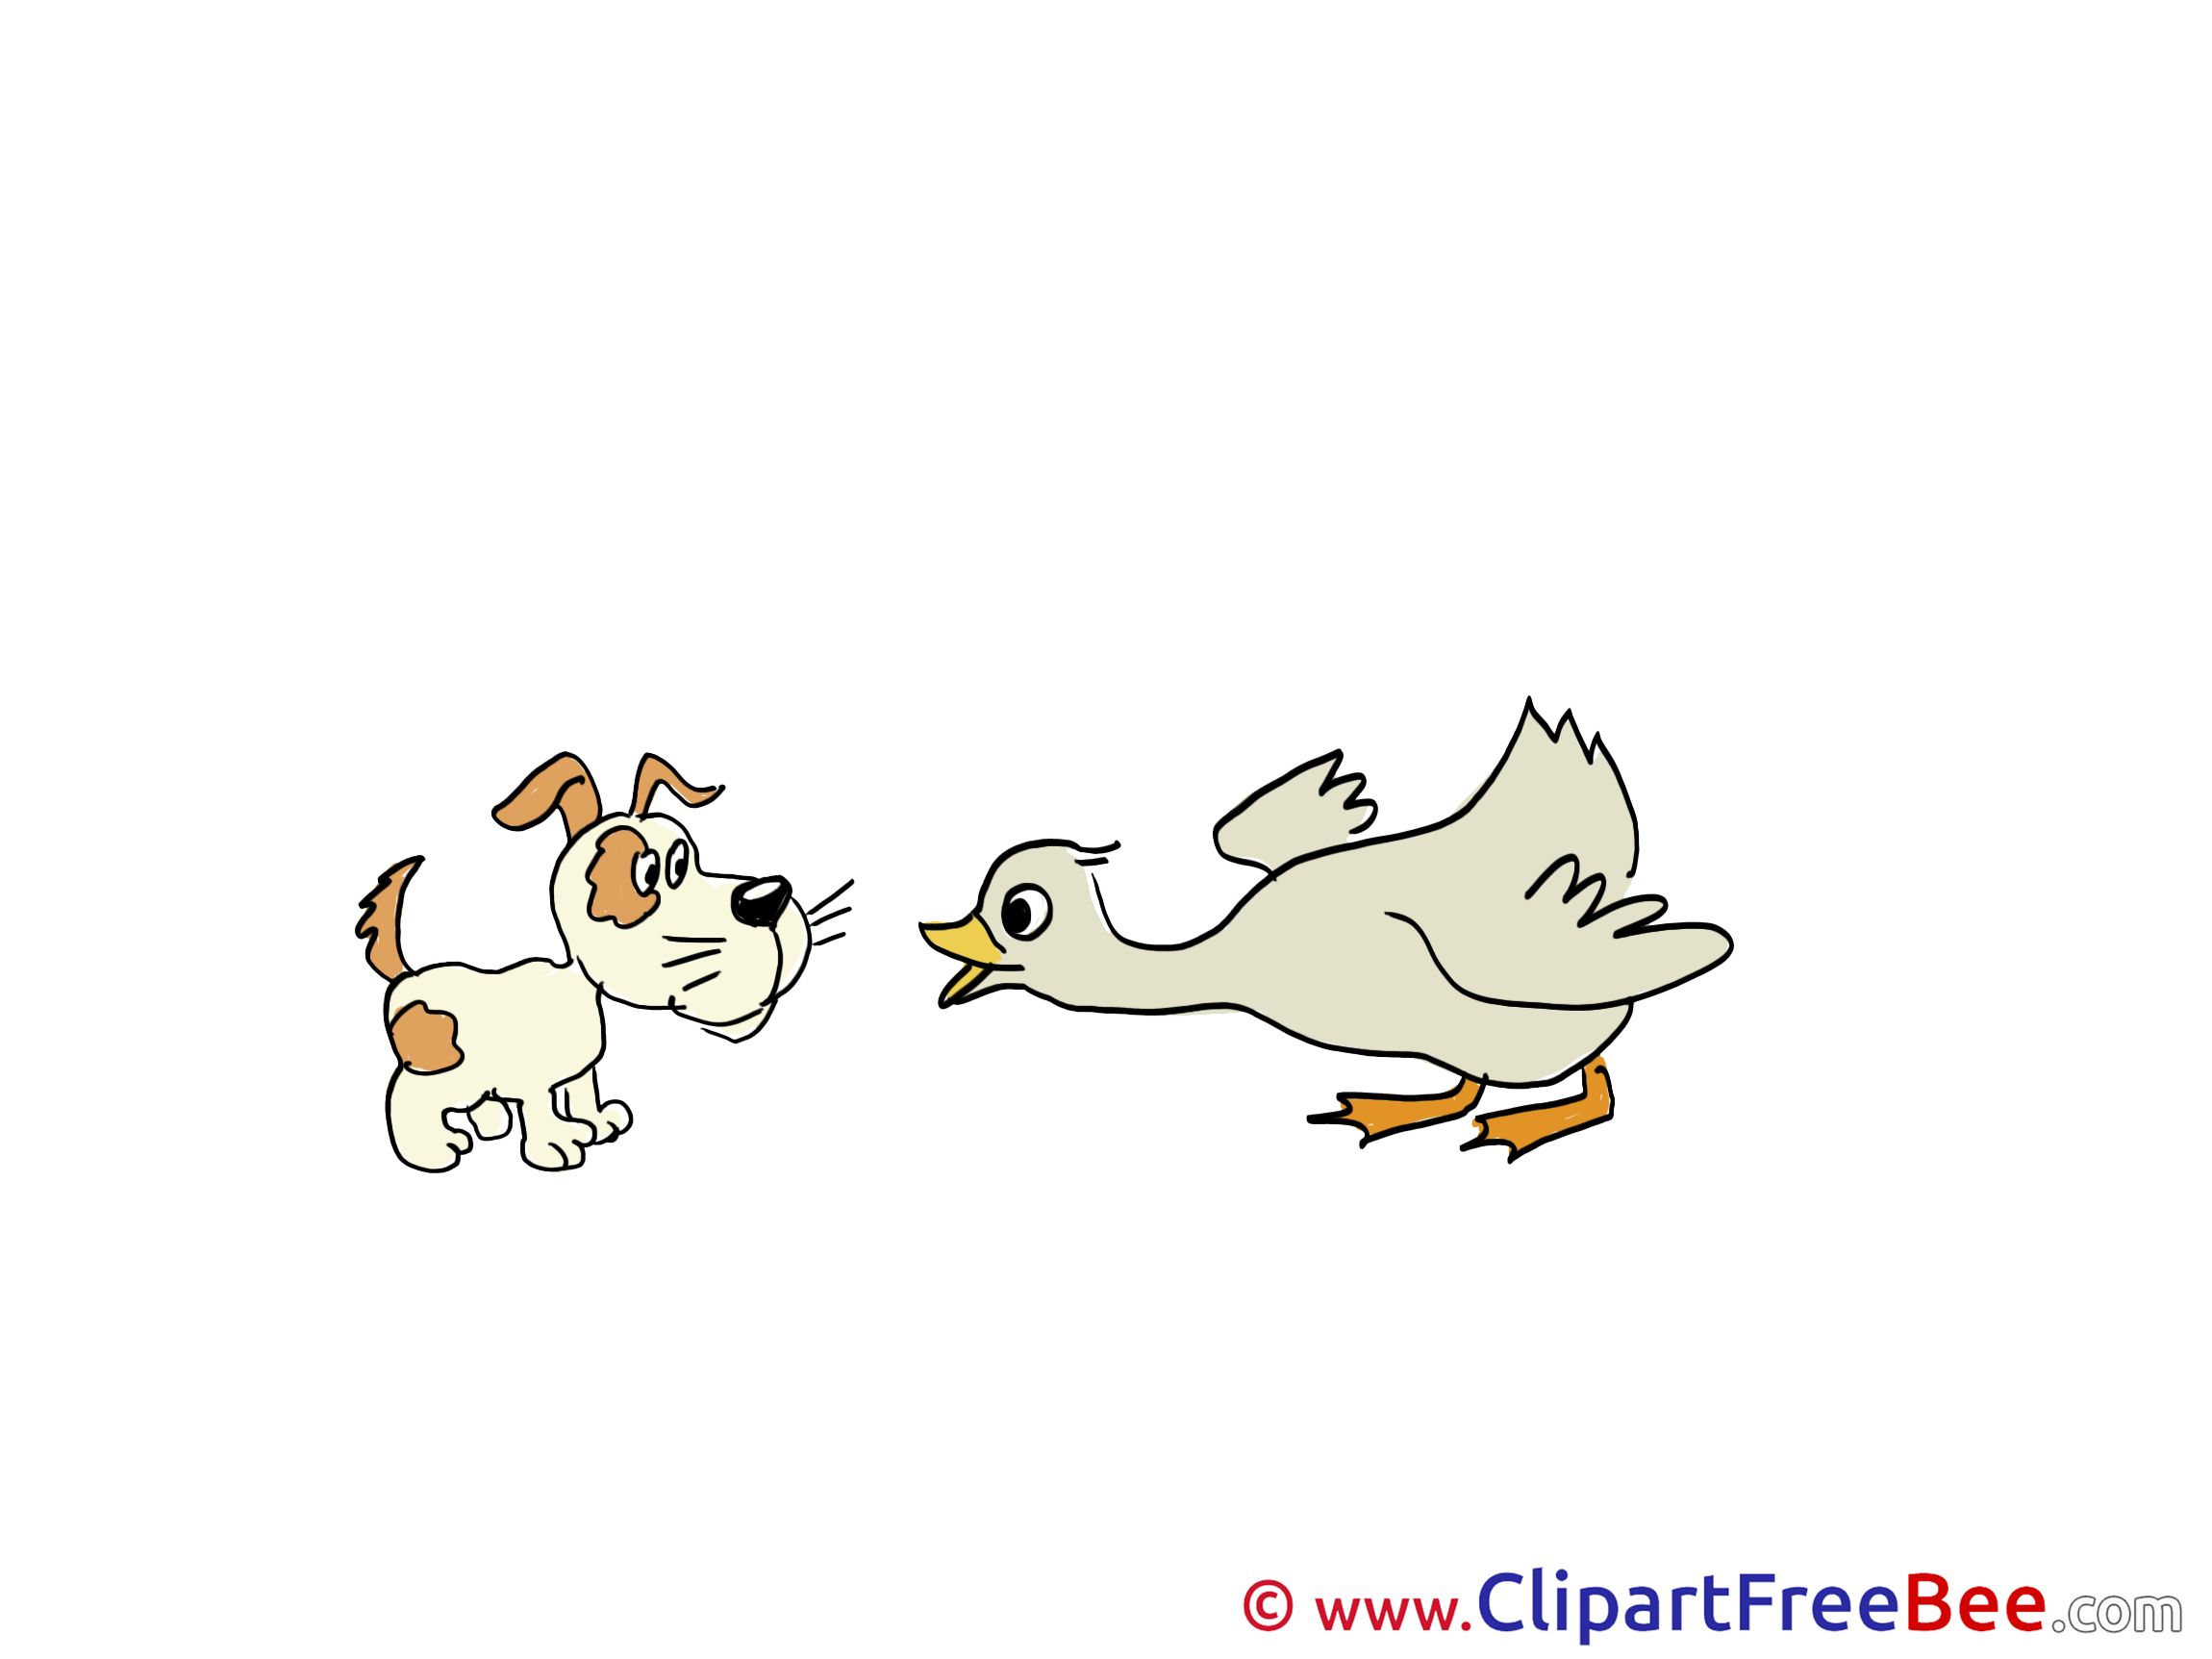 Duck with Puppy free Illustration download